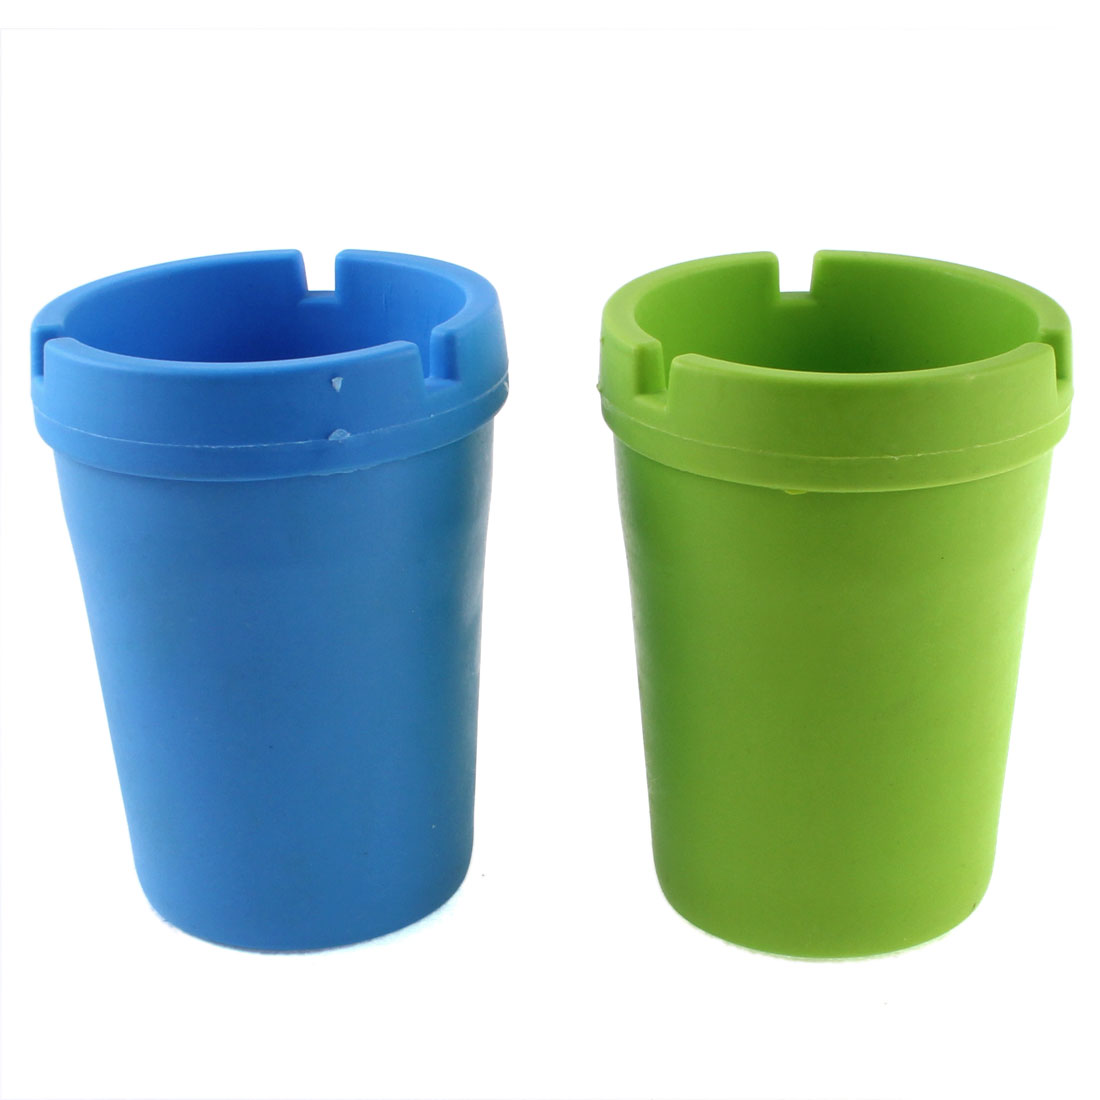 Car Extinguishing Butt Bucket Cigarette Ashtray Holder Pot 2 Pcs